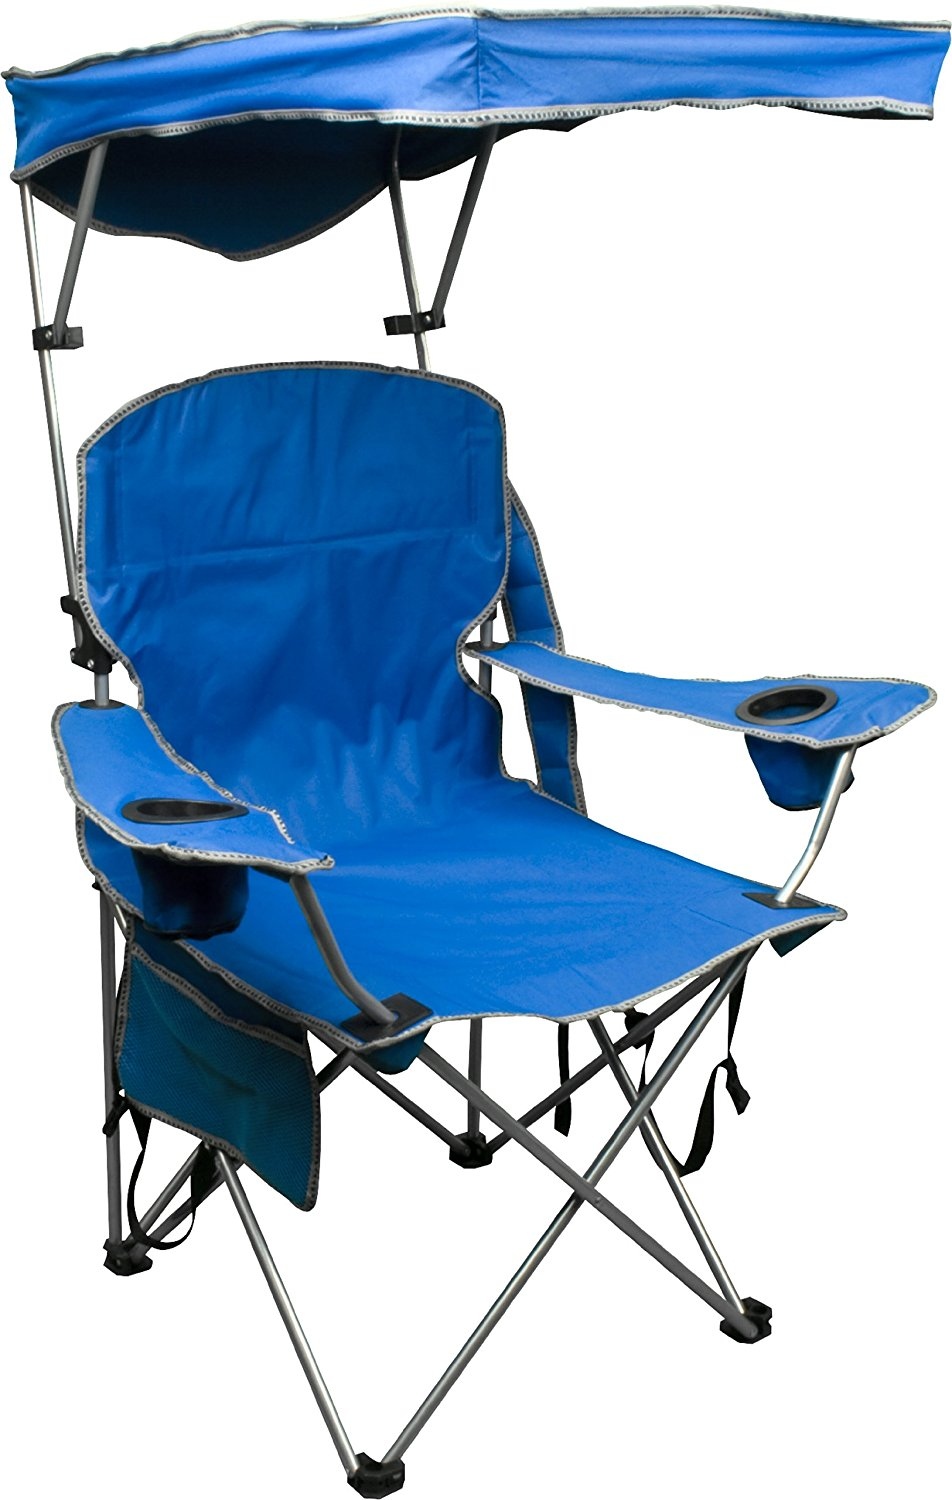 Review of Quik Shade Adjustable Canopy Folding Camp Chair